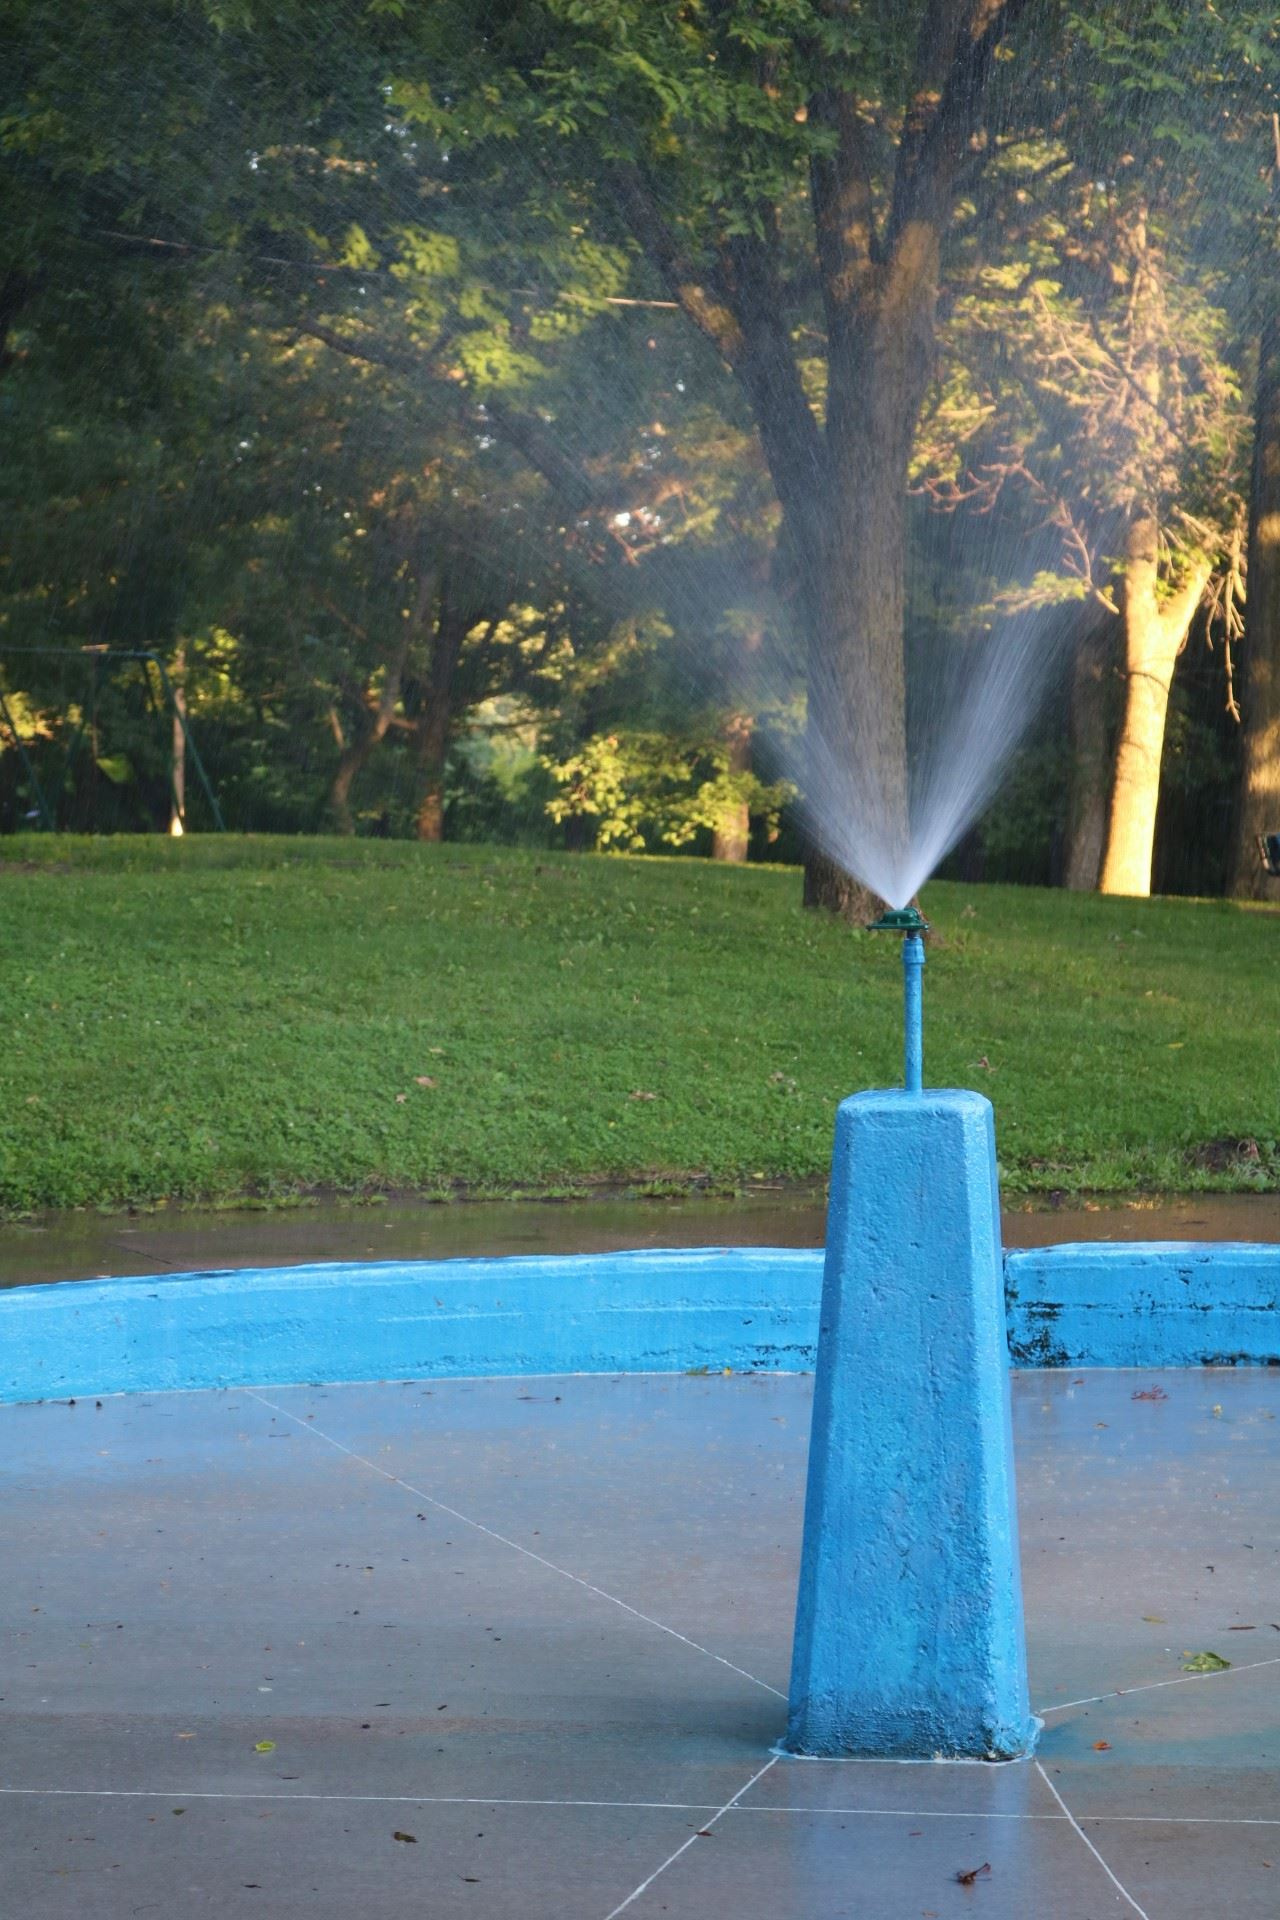 The Spray Pool is open for public use during park hours, weather permitting.